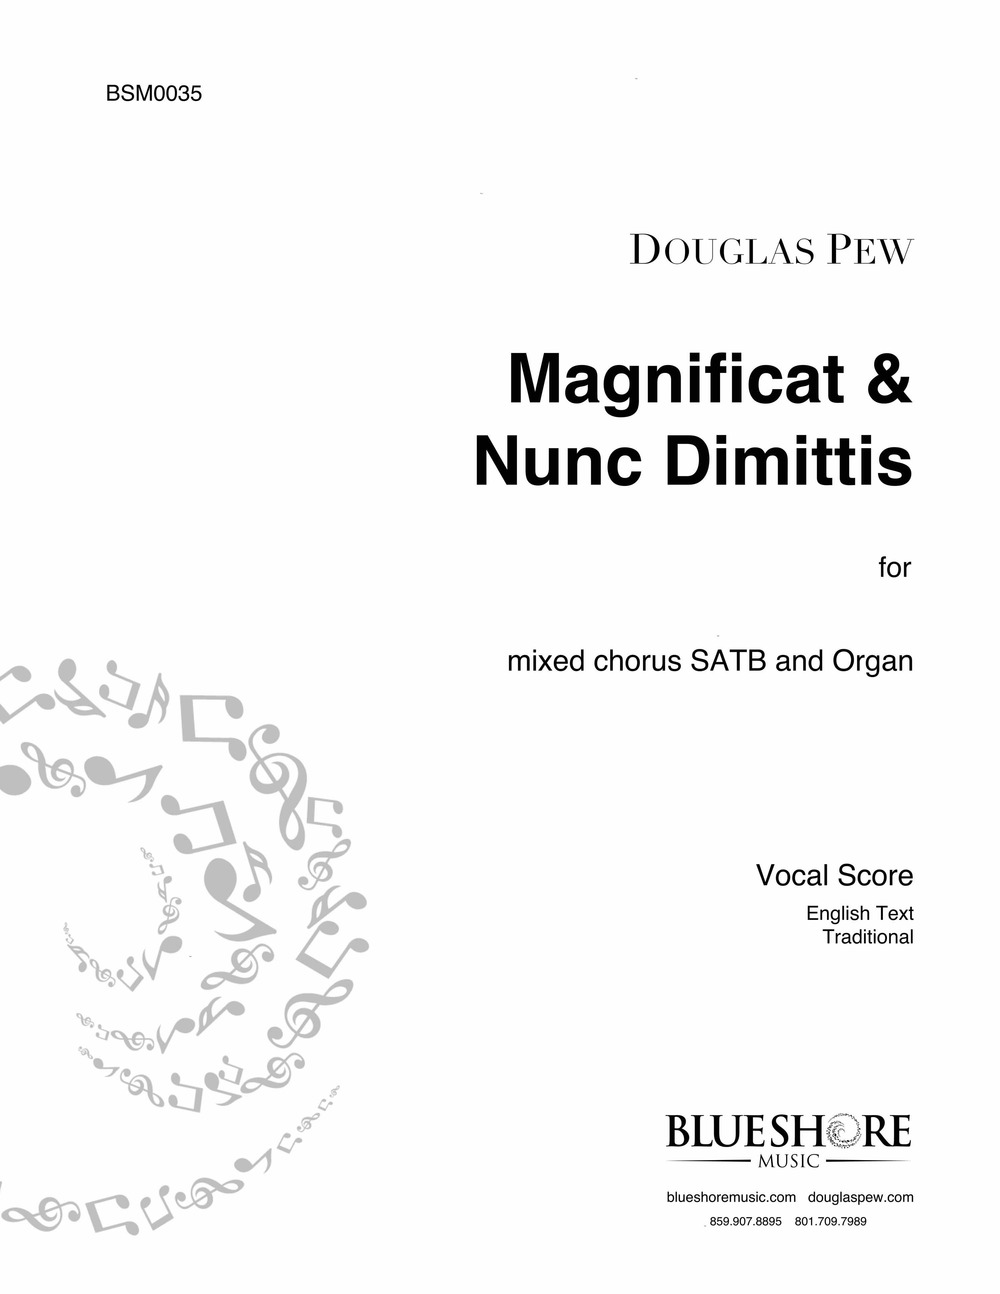 Magnificat & Nunc Dimittis (St. Thomas Service), for SATB and Organ